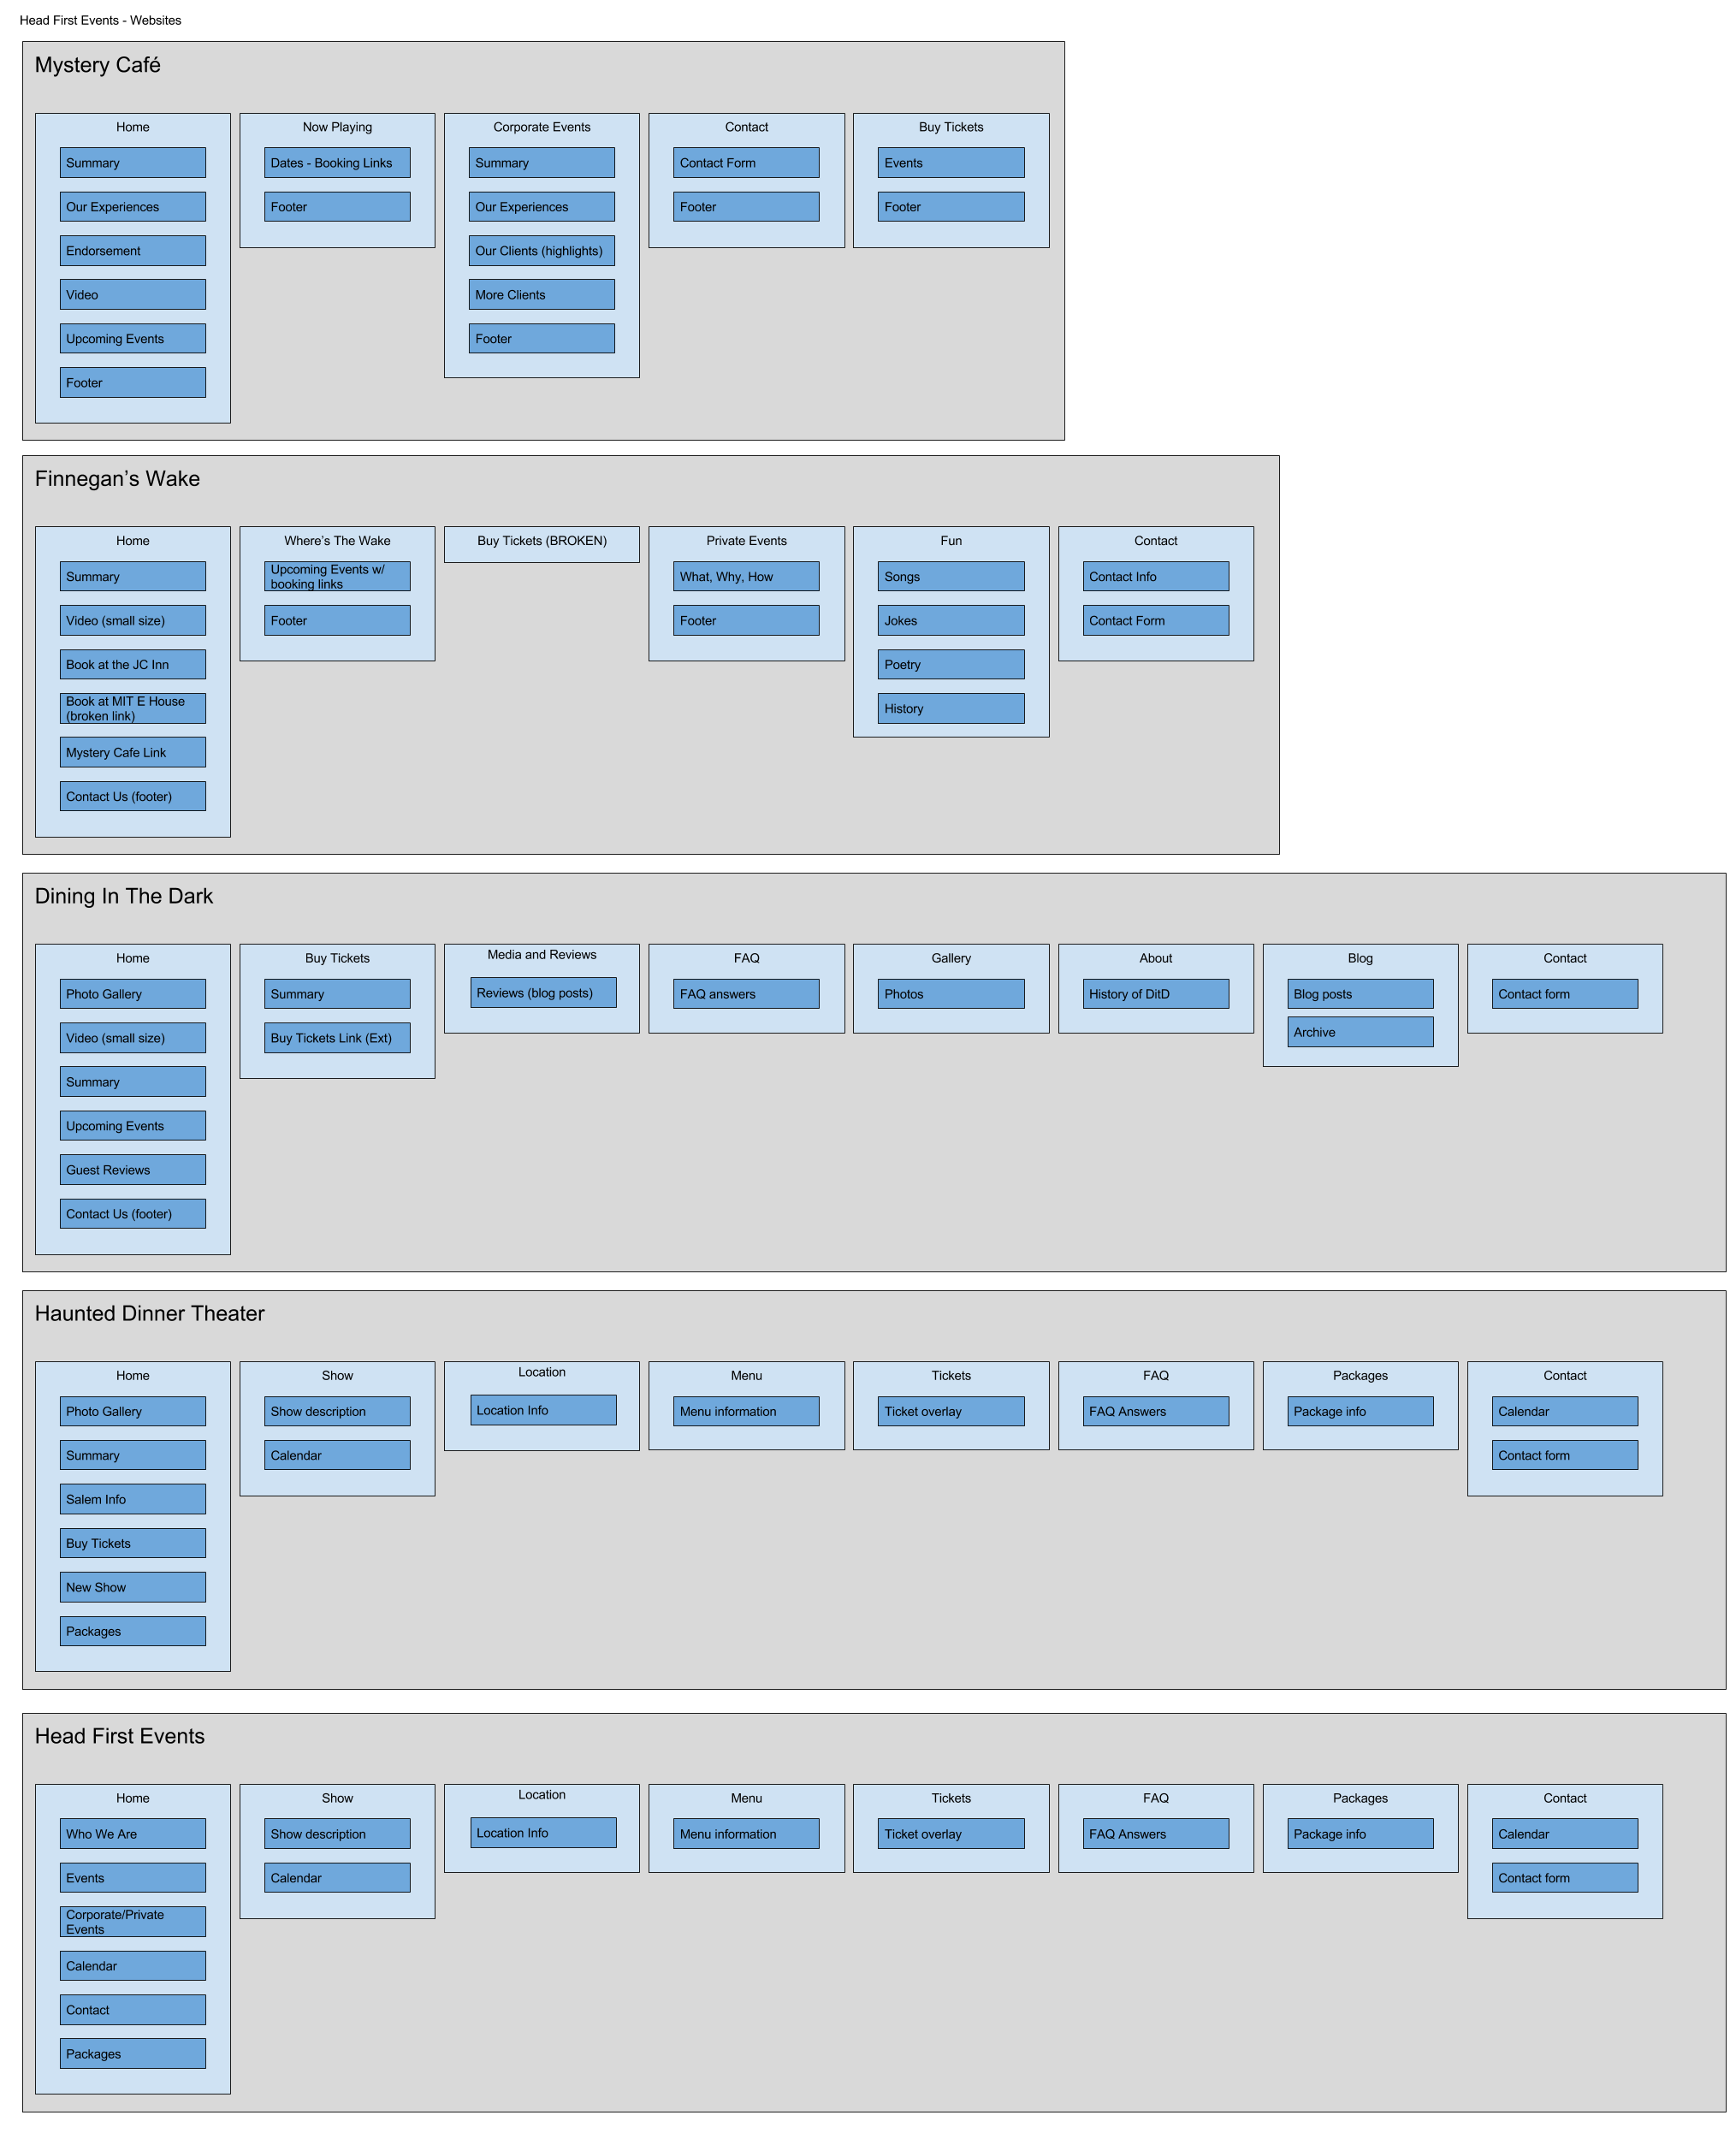 This outline shows all the information the current websites were displaying and how they were organized